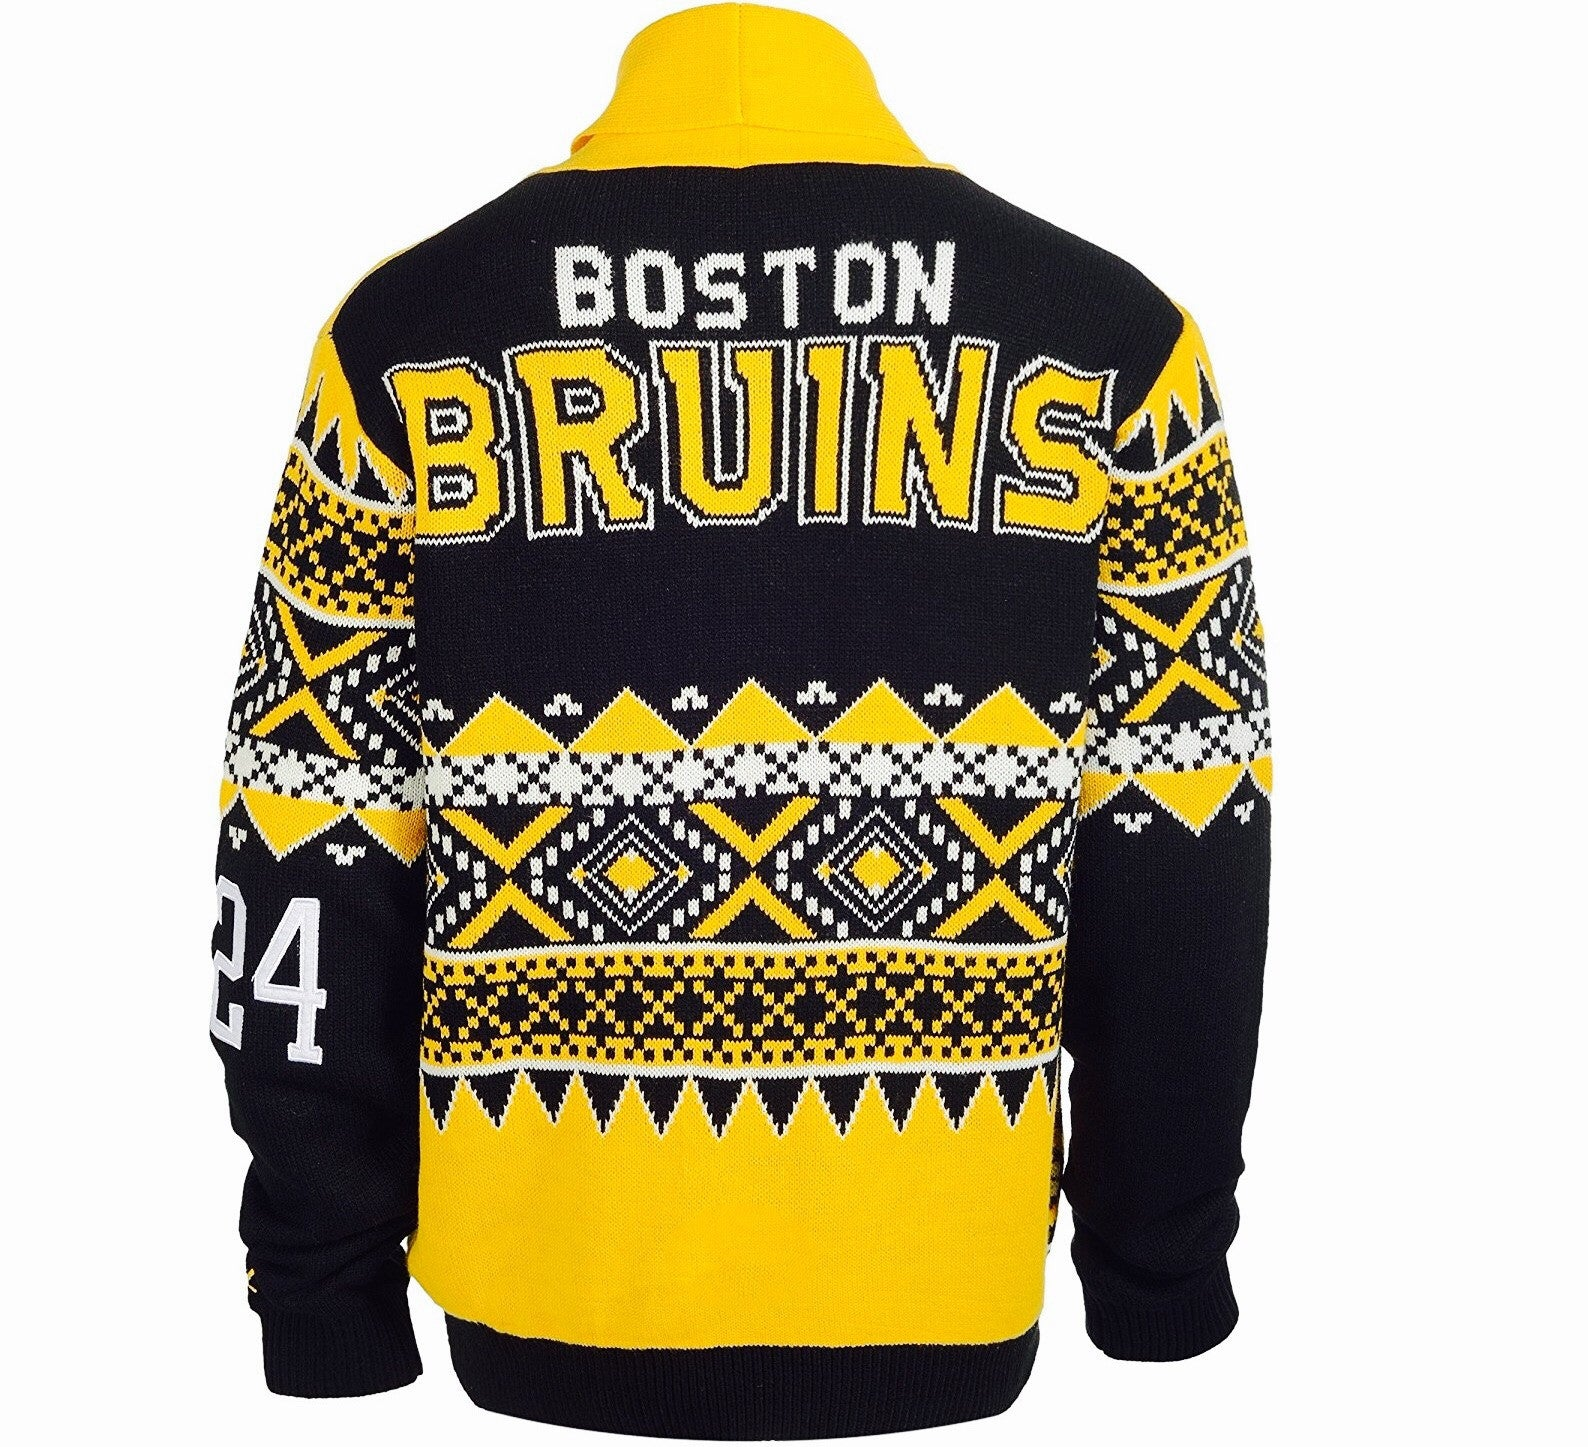 Bruins Retro Cardigan Sweater - And Still